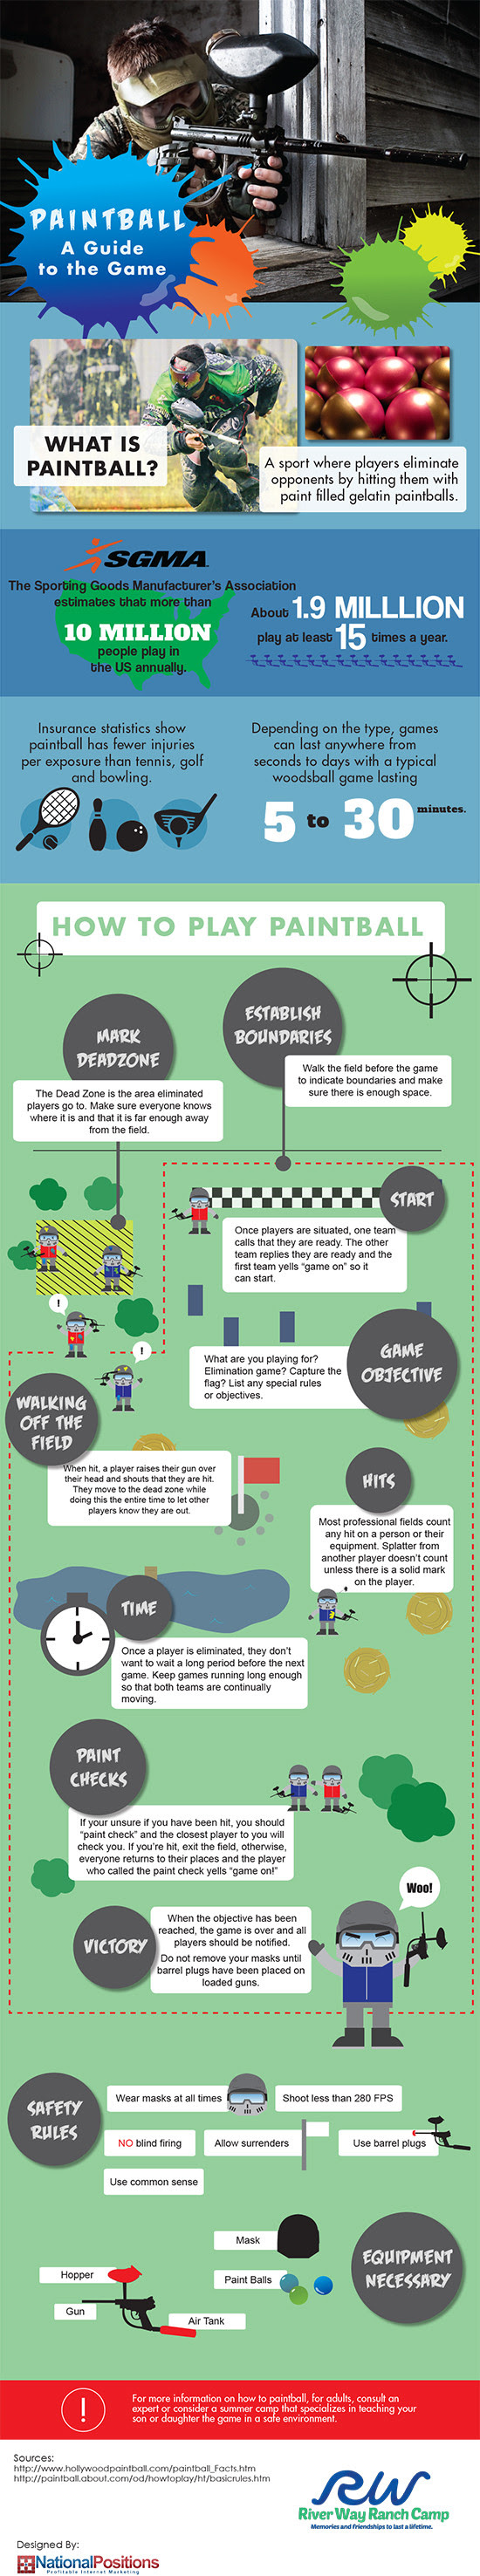 Infographic: Paintball A Guide to the Game #infographic